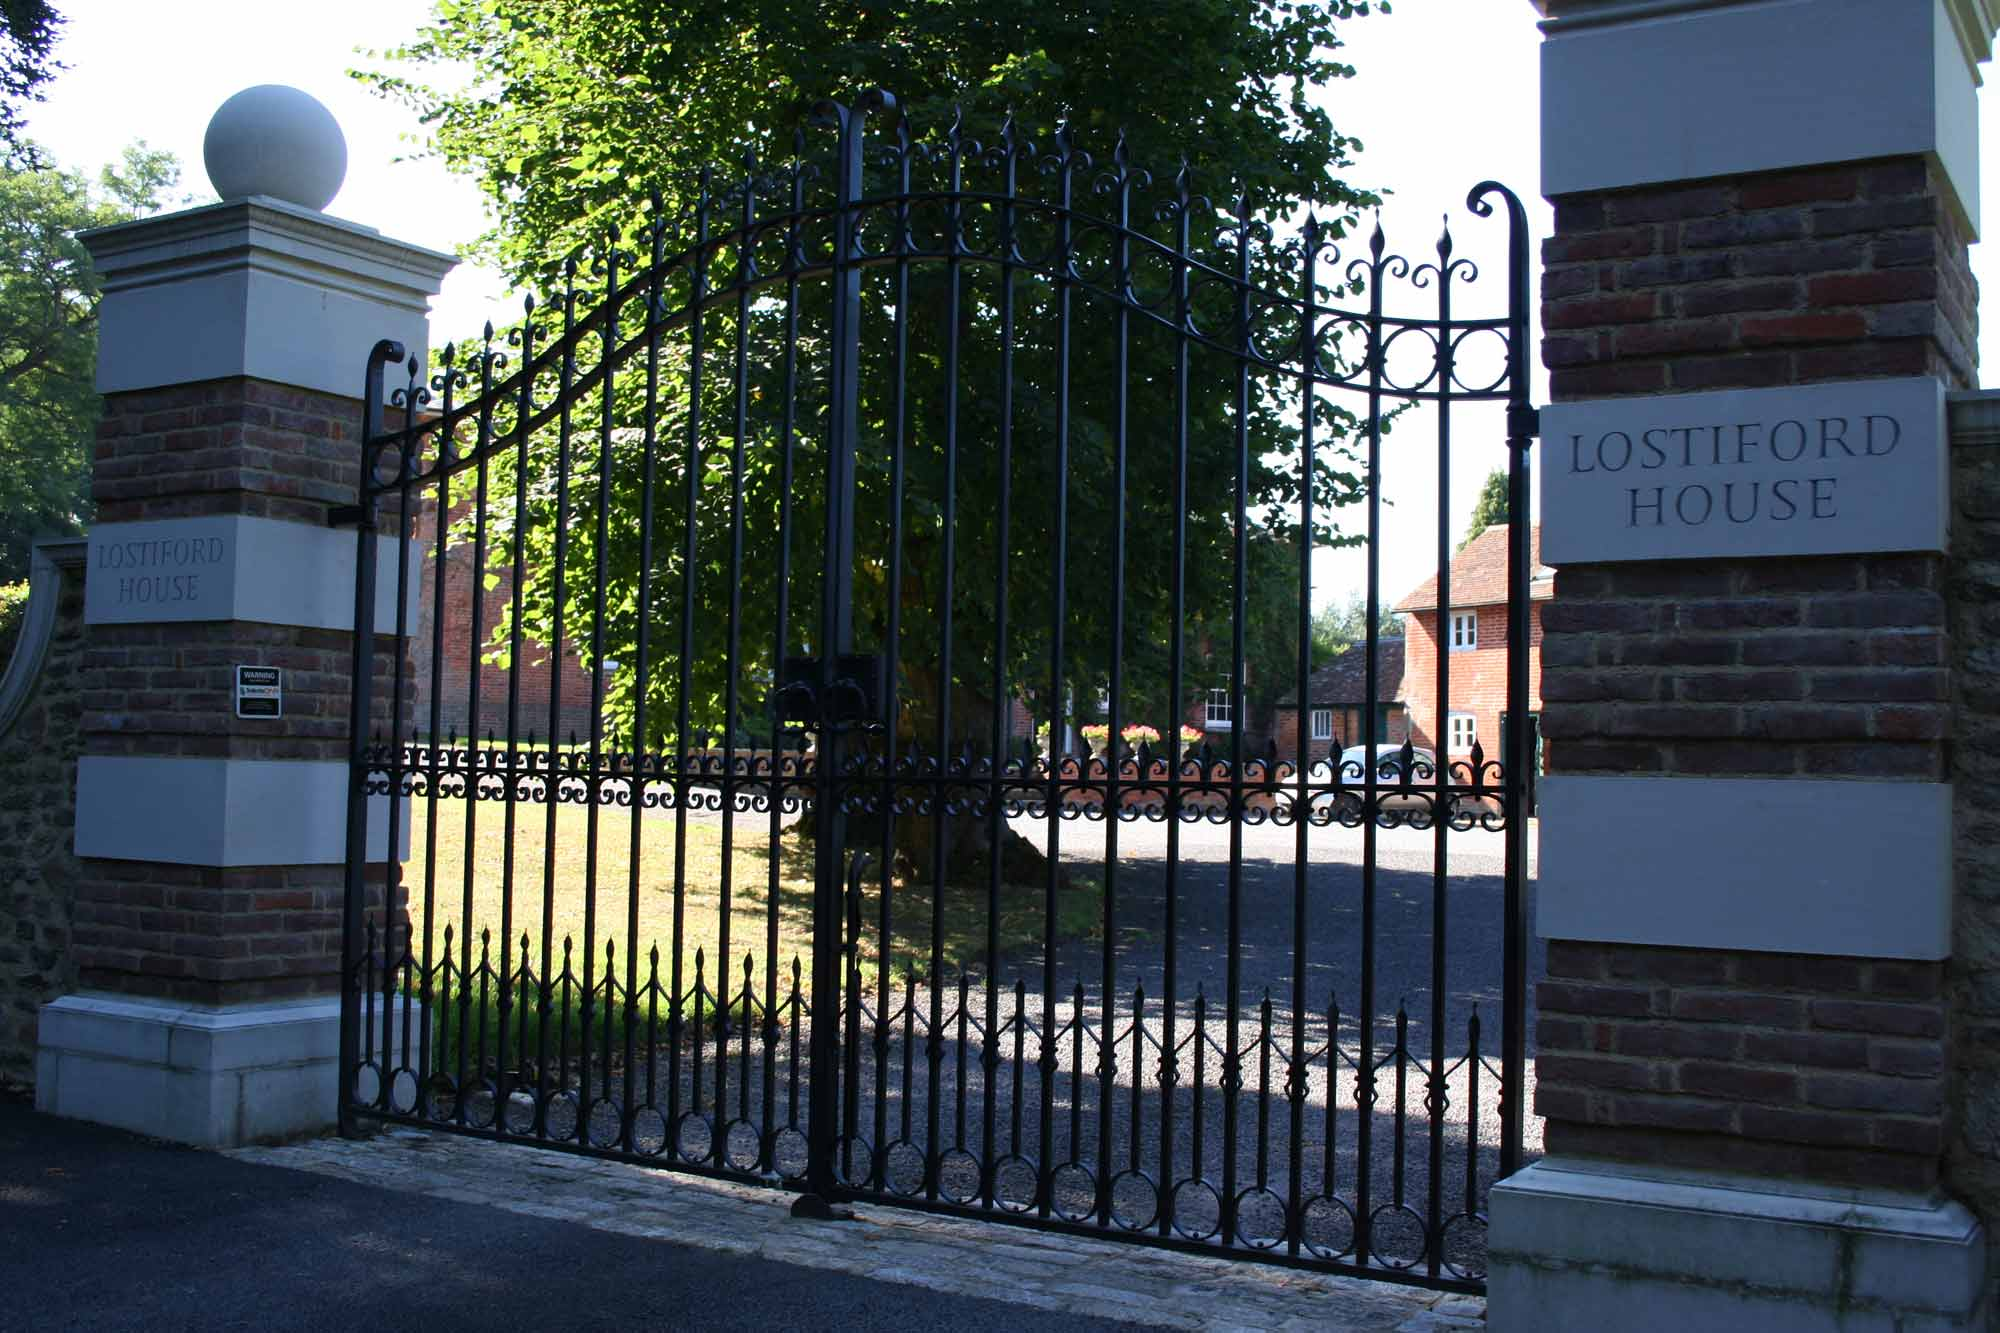 lostiford-house-gates-wonersh-surrey